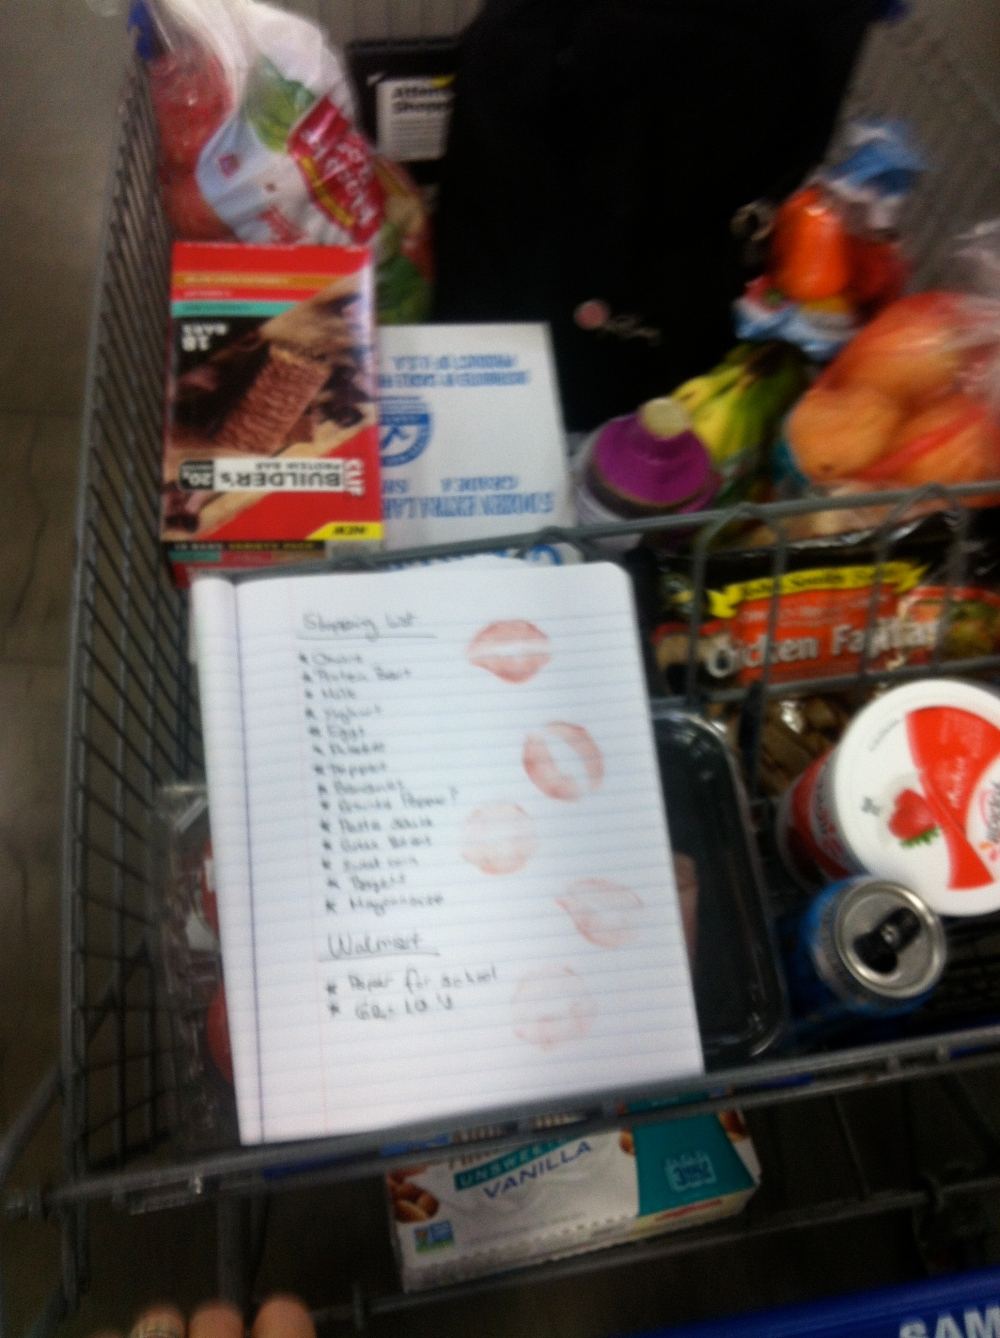 SAM'S club - Honolulu - Costco - Consumer - America Shopping - Groceries - SAM'S Club membership - Shopping list